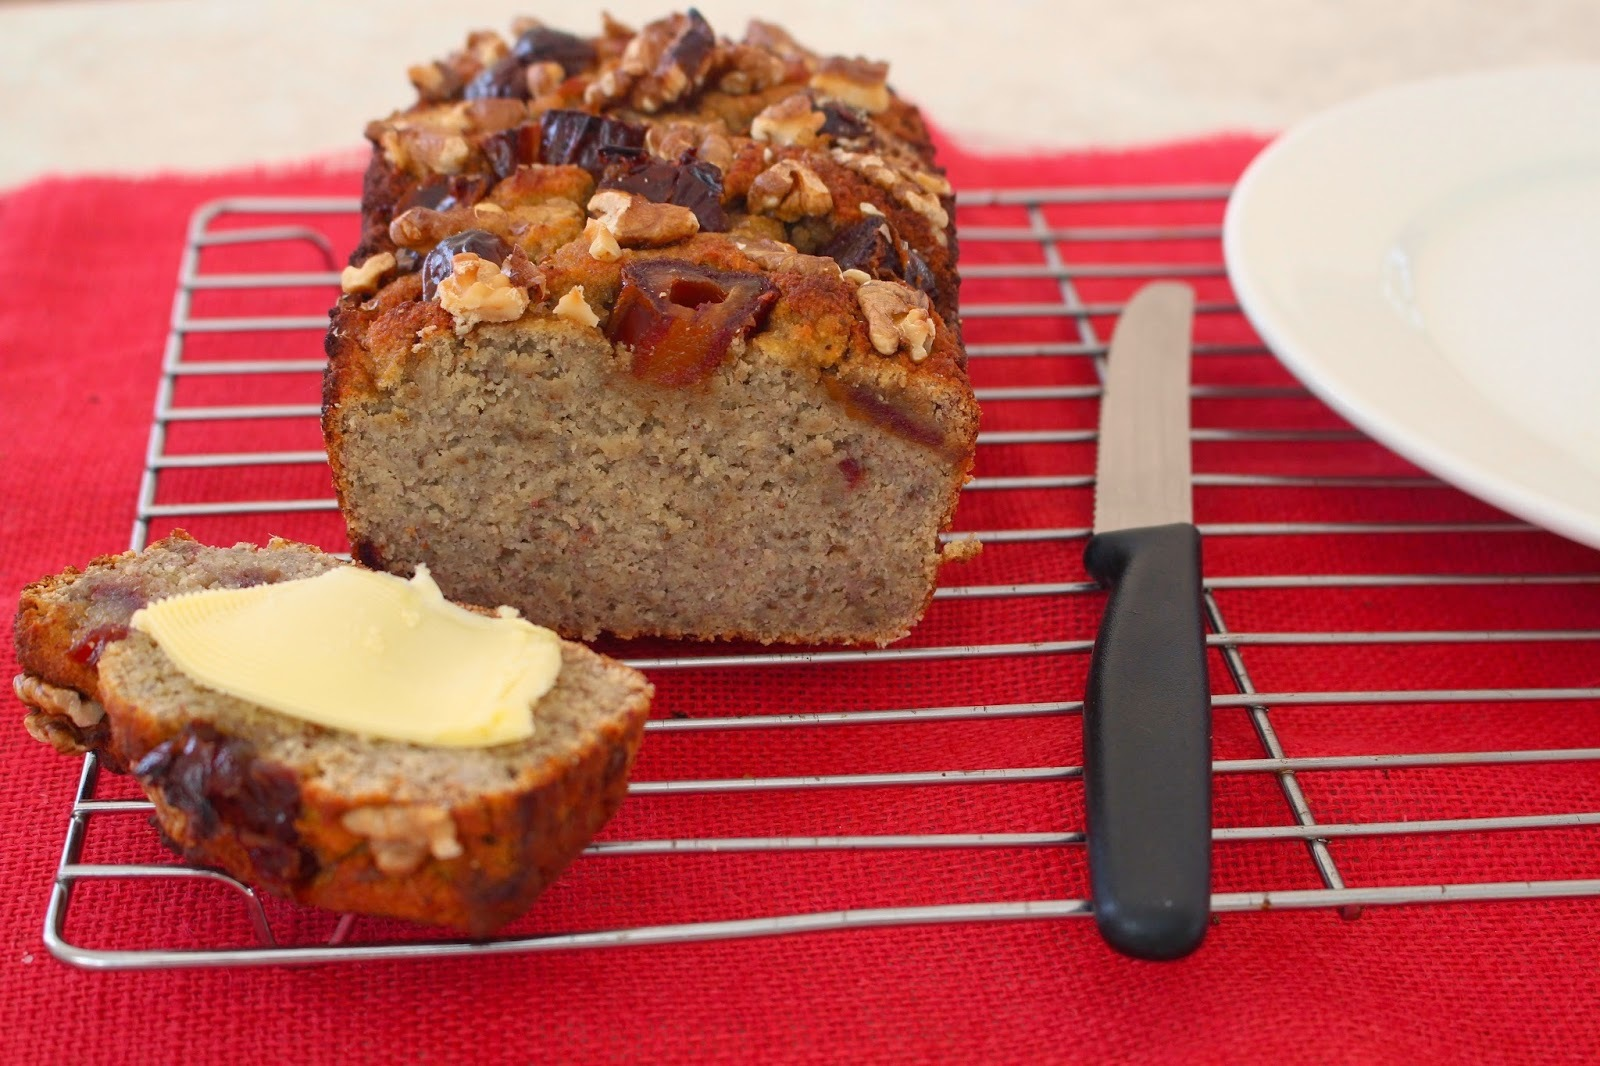 Coconut Flour Banana Bread with Dates & Walnuts